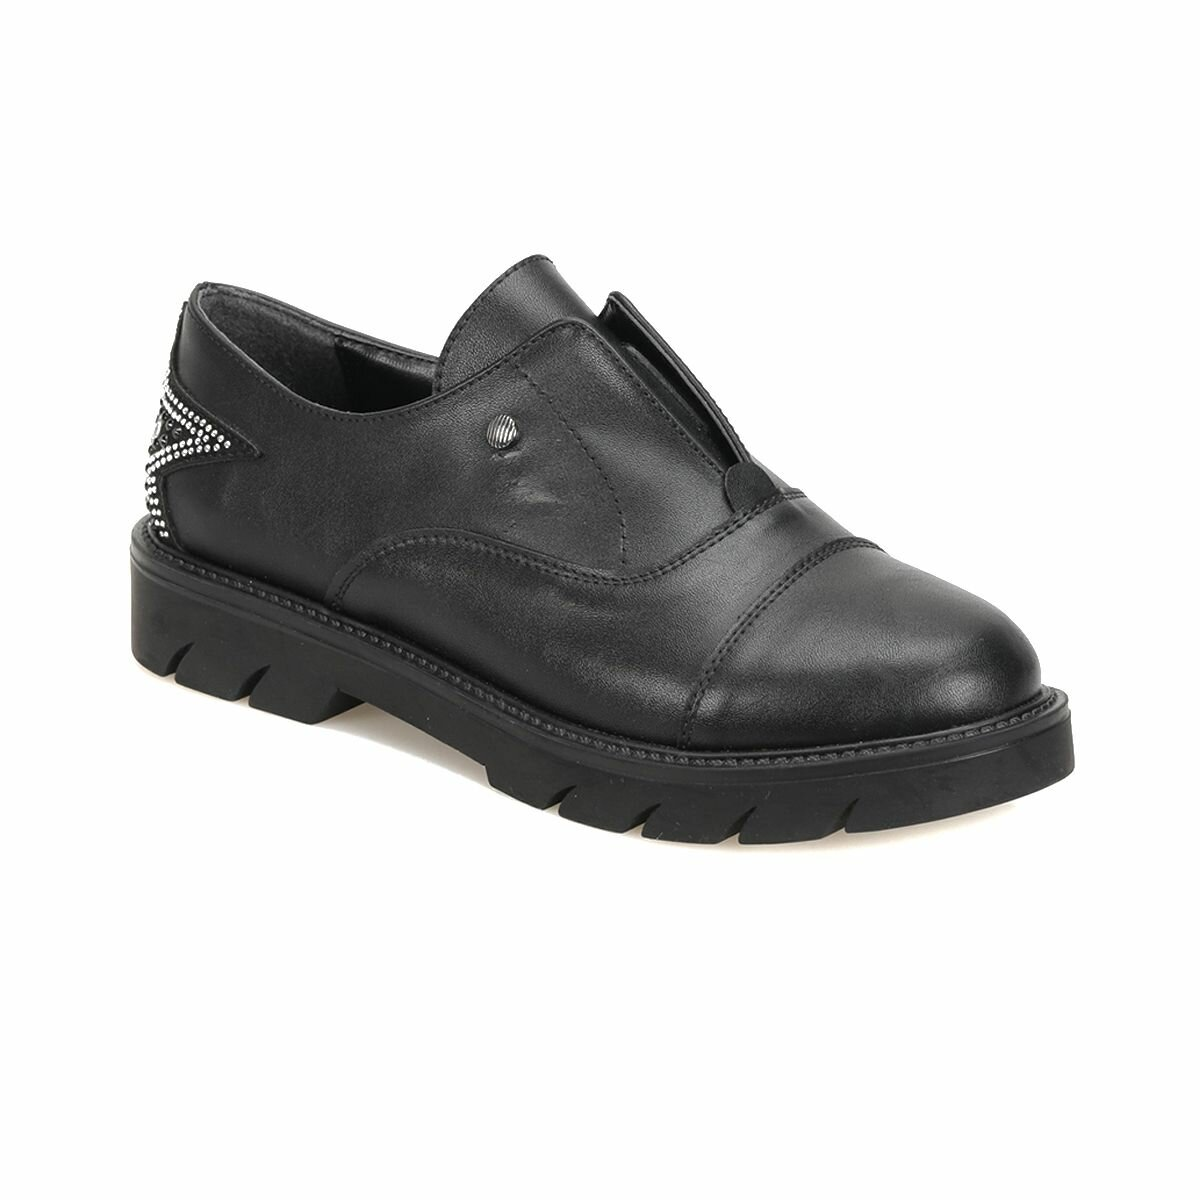 FLO 18K-259 Black Women Oxford Shoes BUTIGO